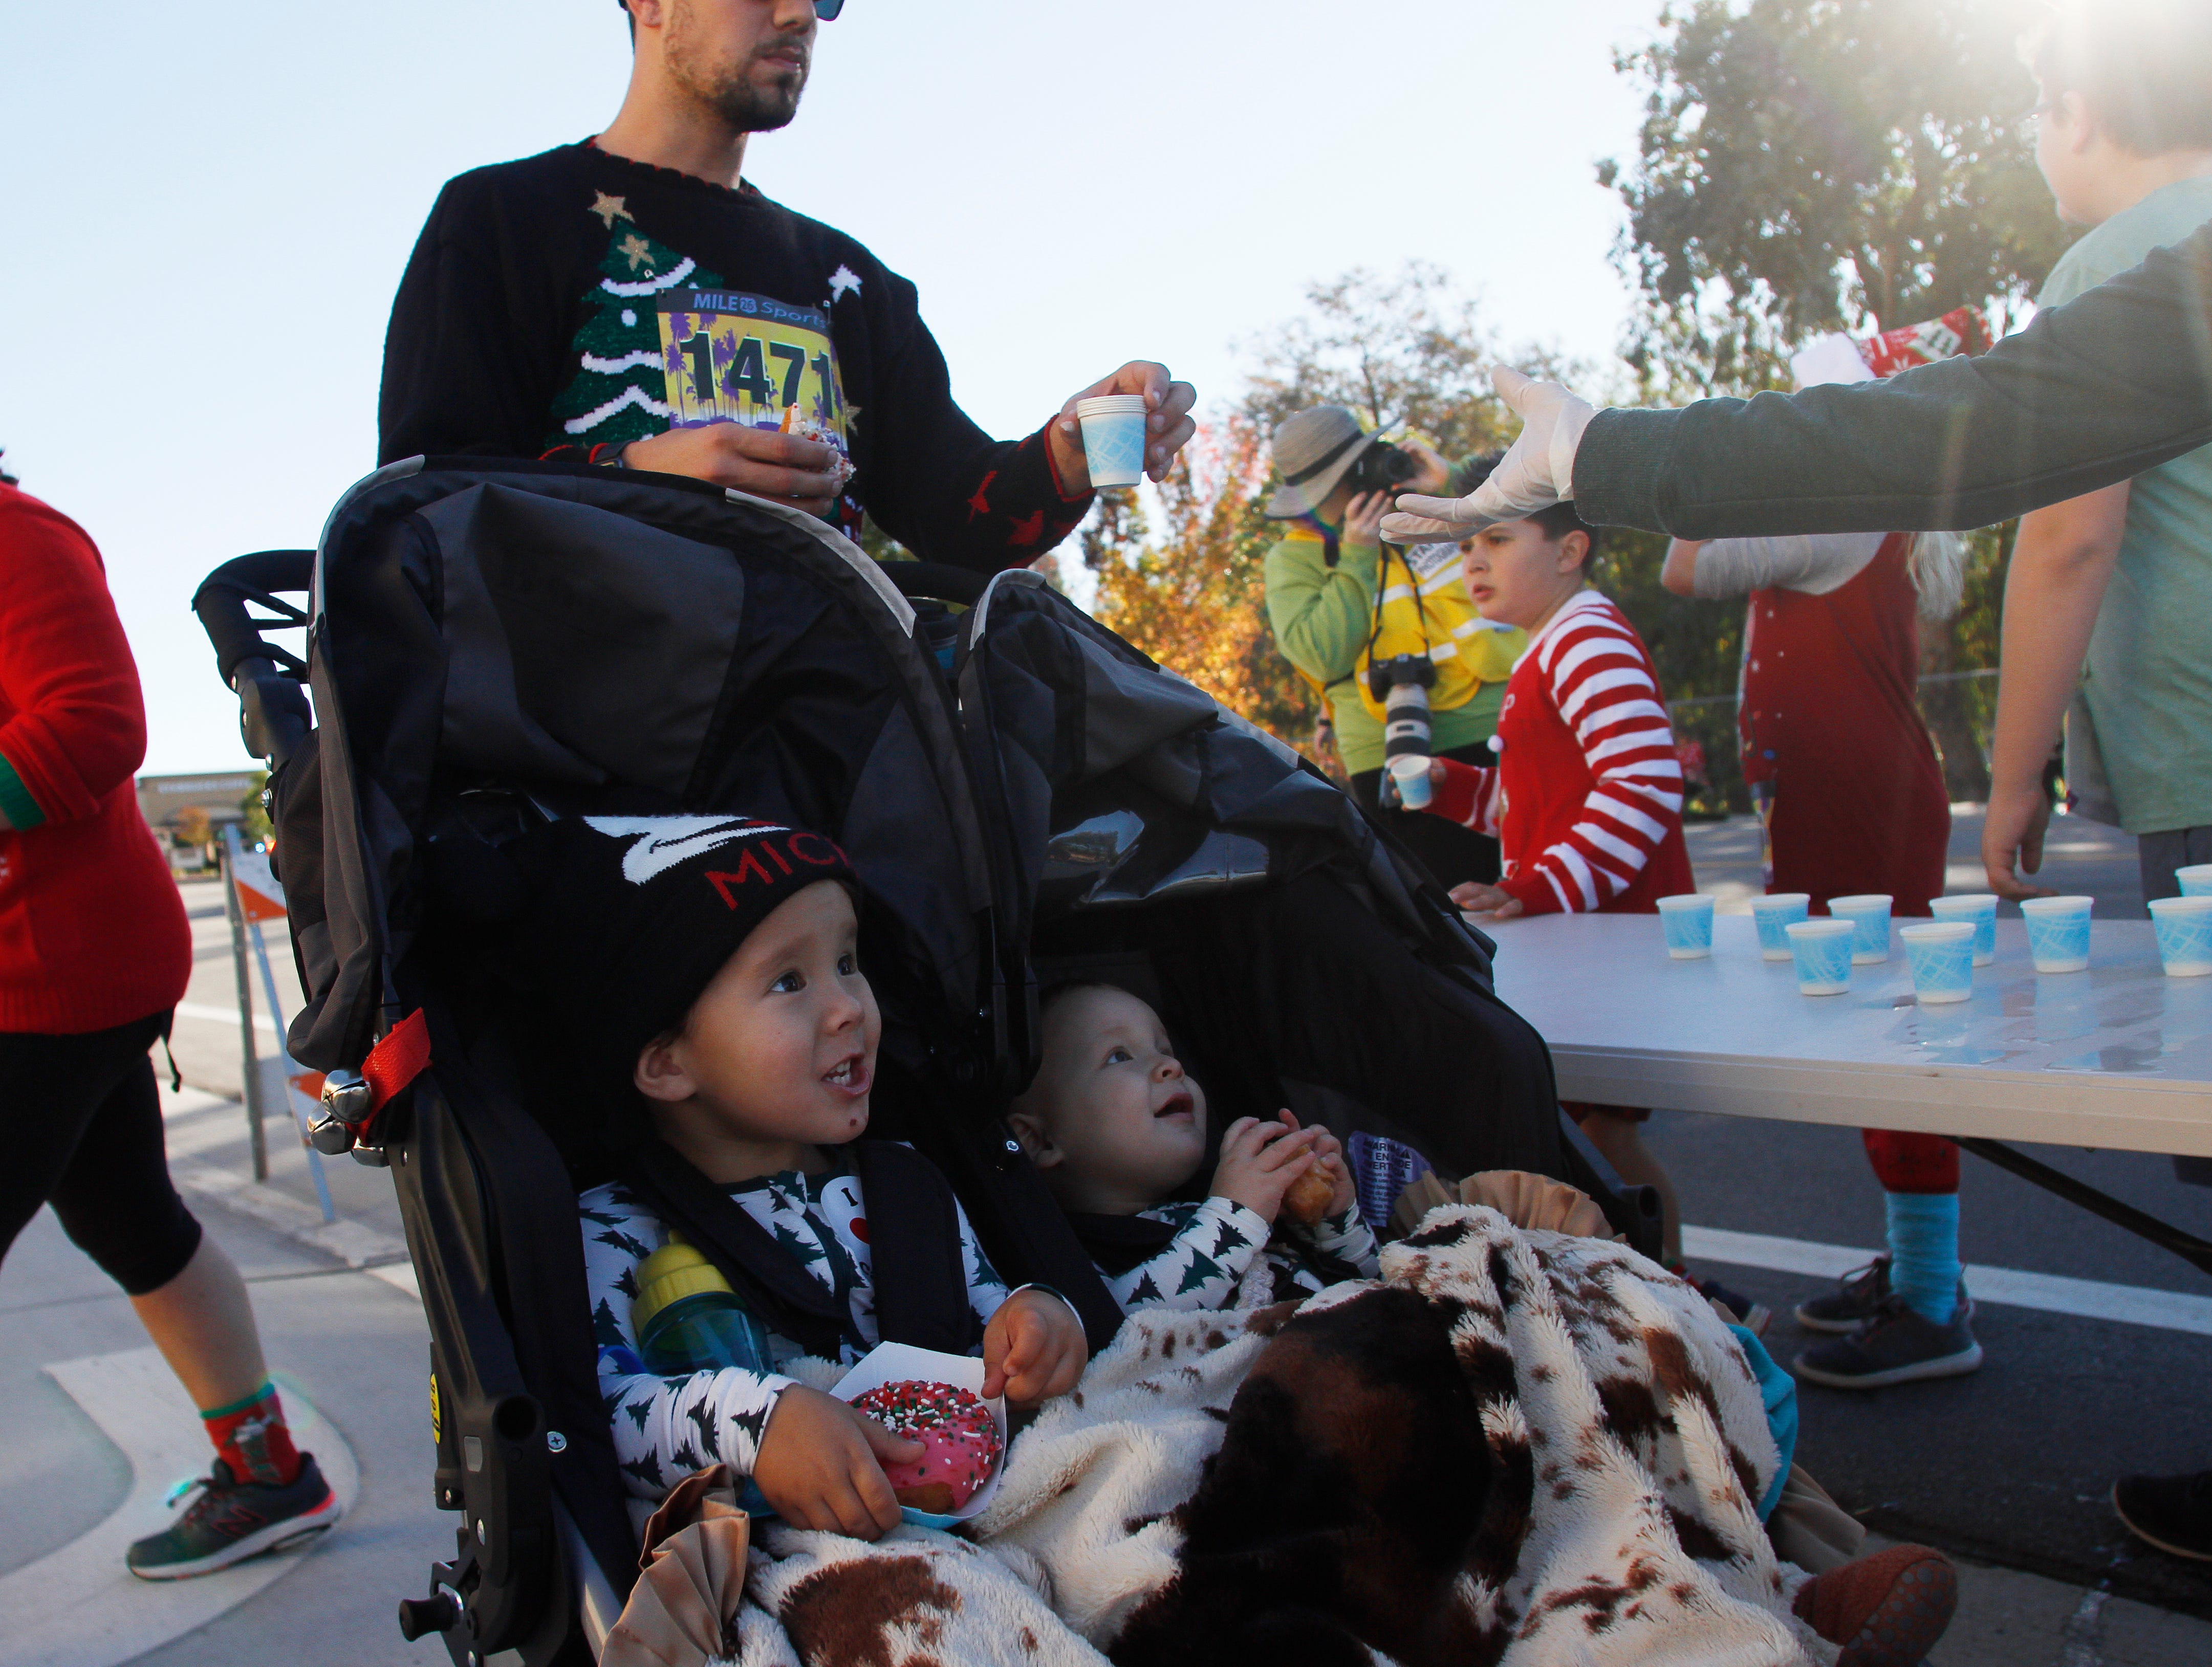 From left in front, Cove and Kai Warren eat doughnuts as their dad, Josh Warren, receives water at an aid station during the 5K run that was part of Christmas festivities Saturday in Camarillo.